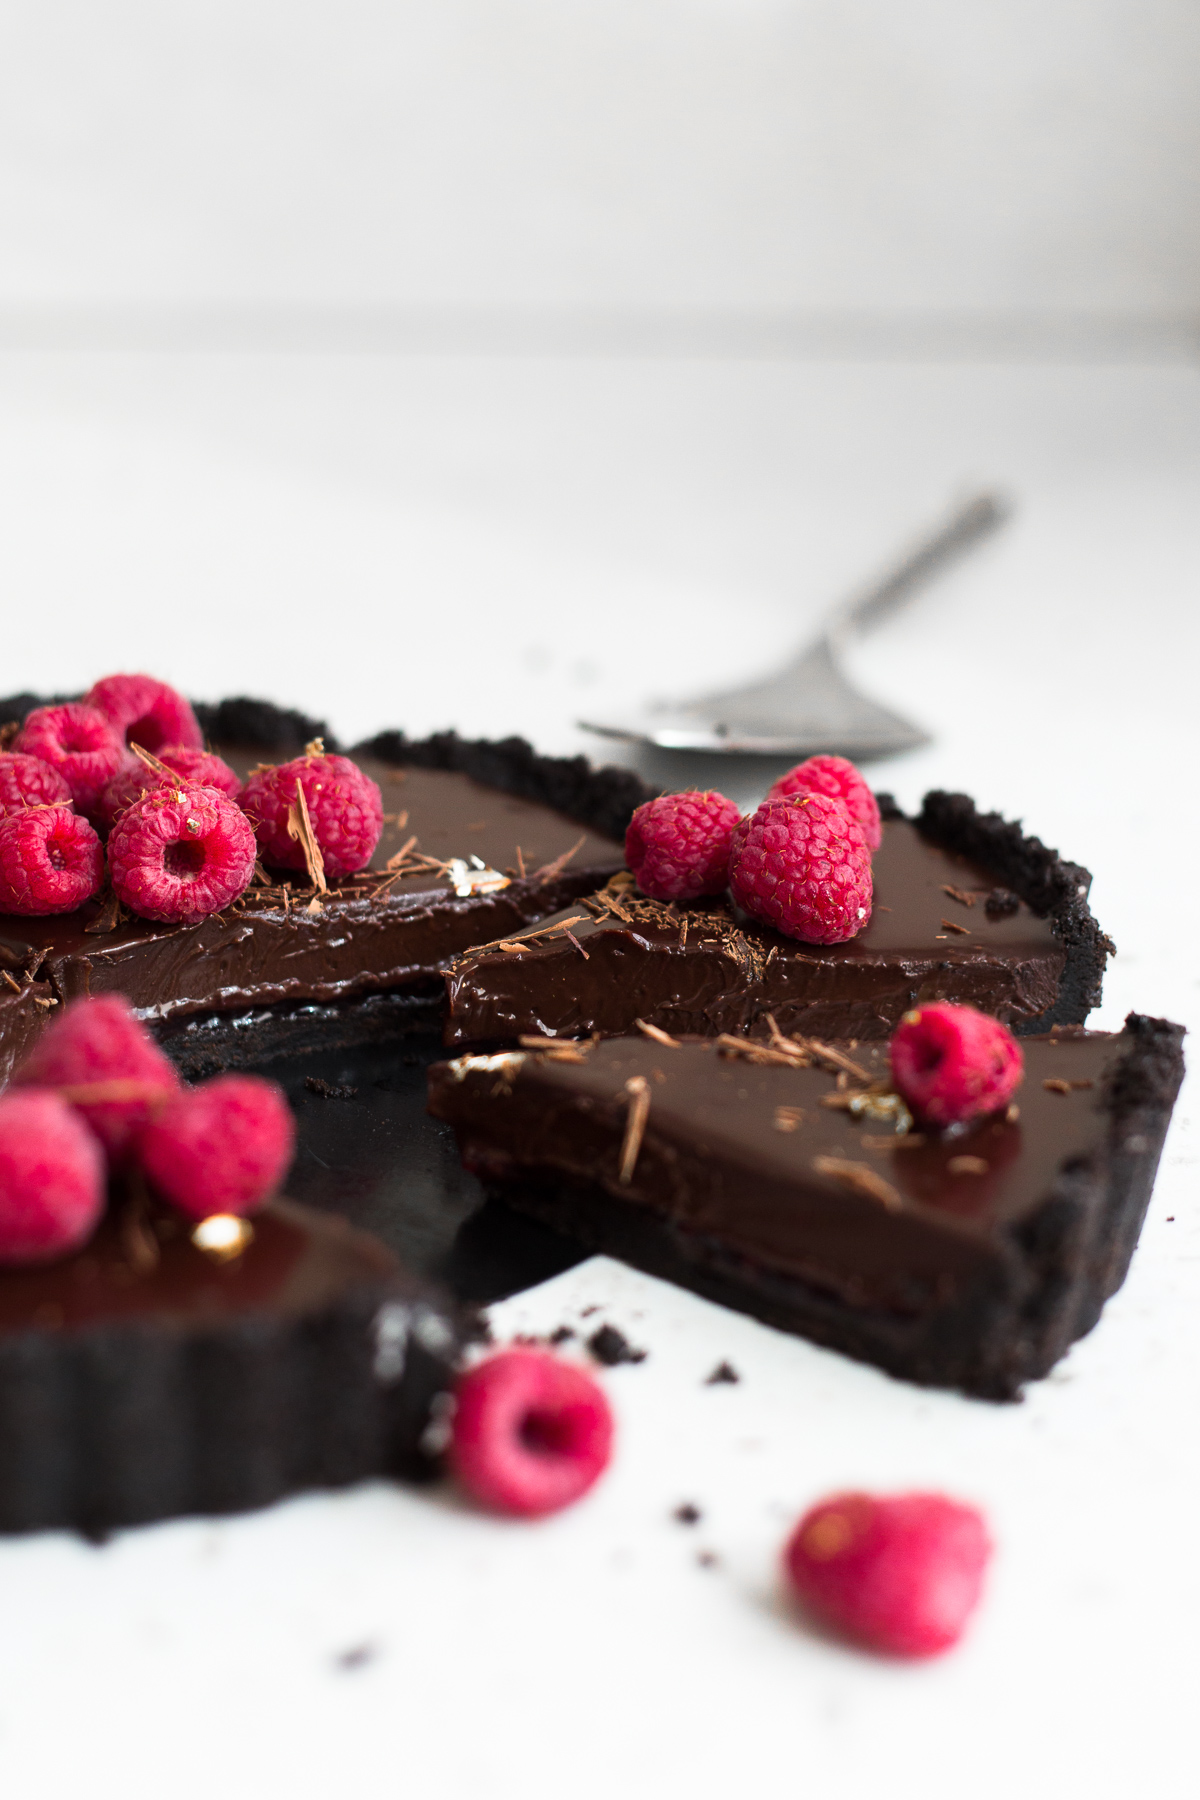 Vegane Oreo Torte 6 Ingredient Vegan Chocolate Ganache Tart